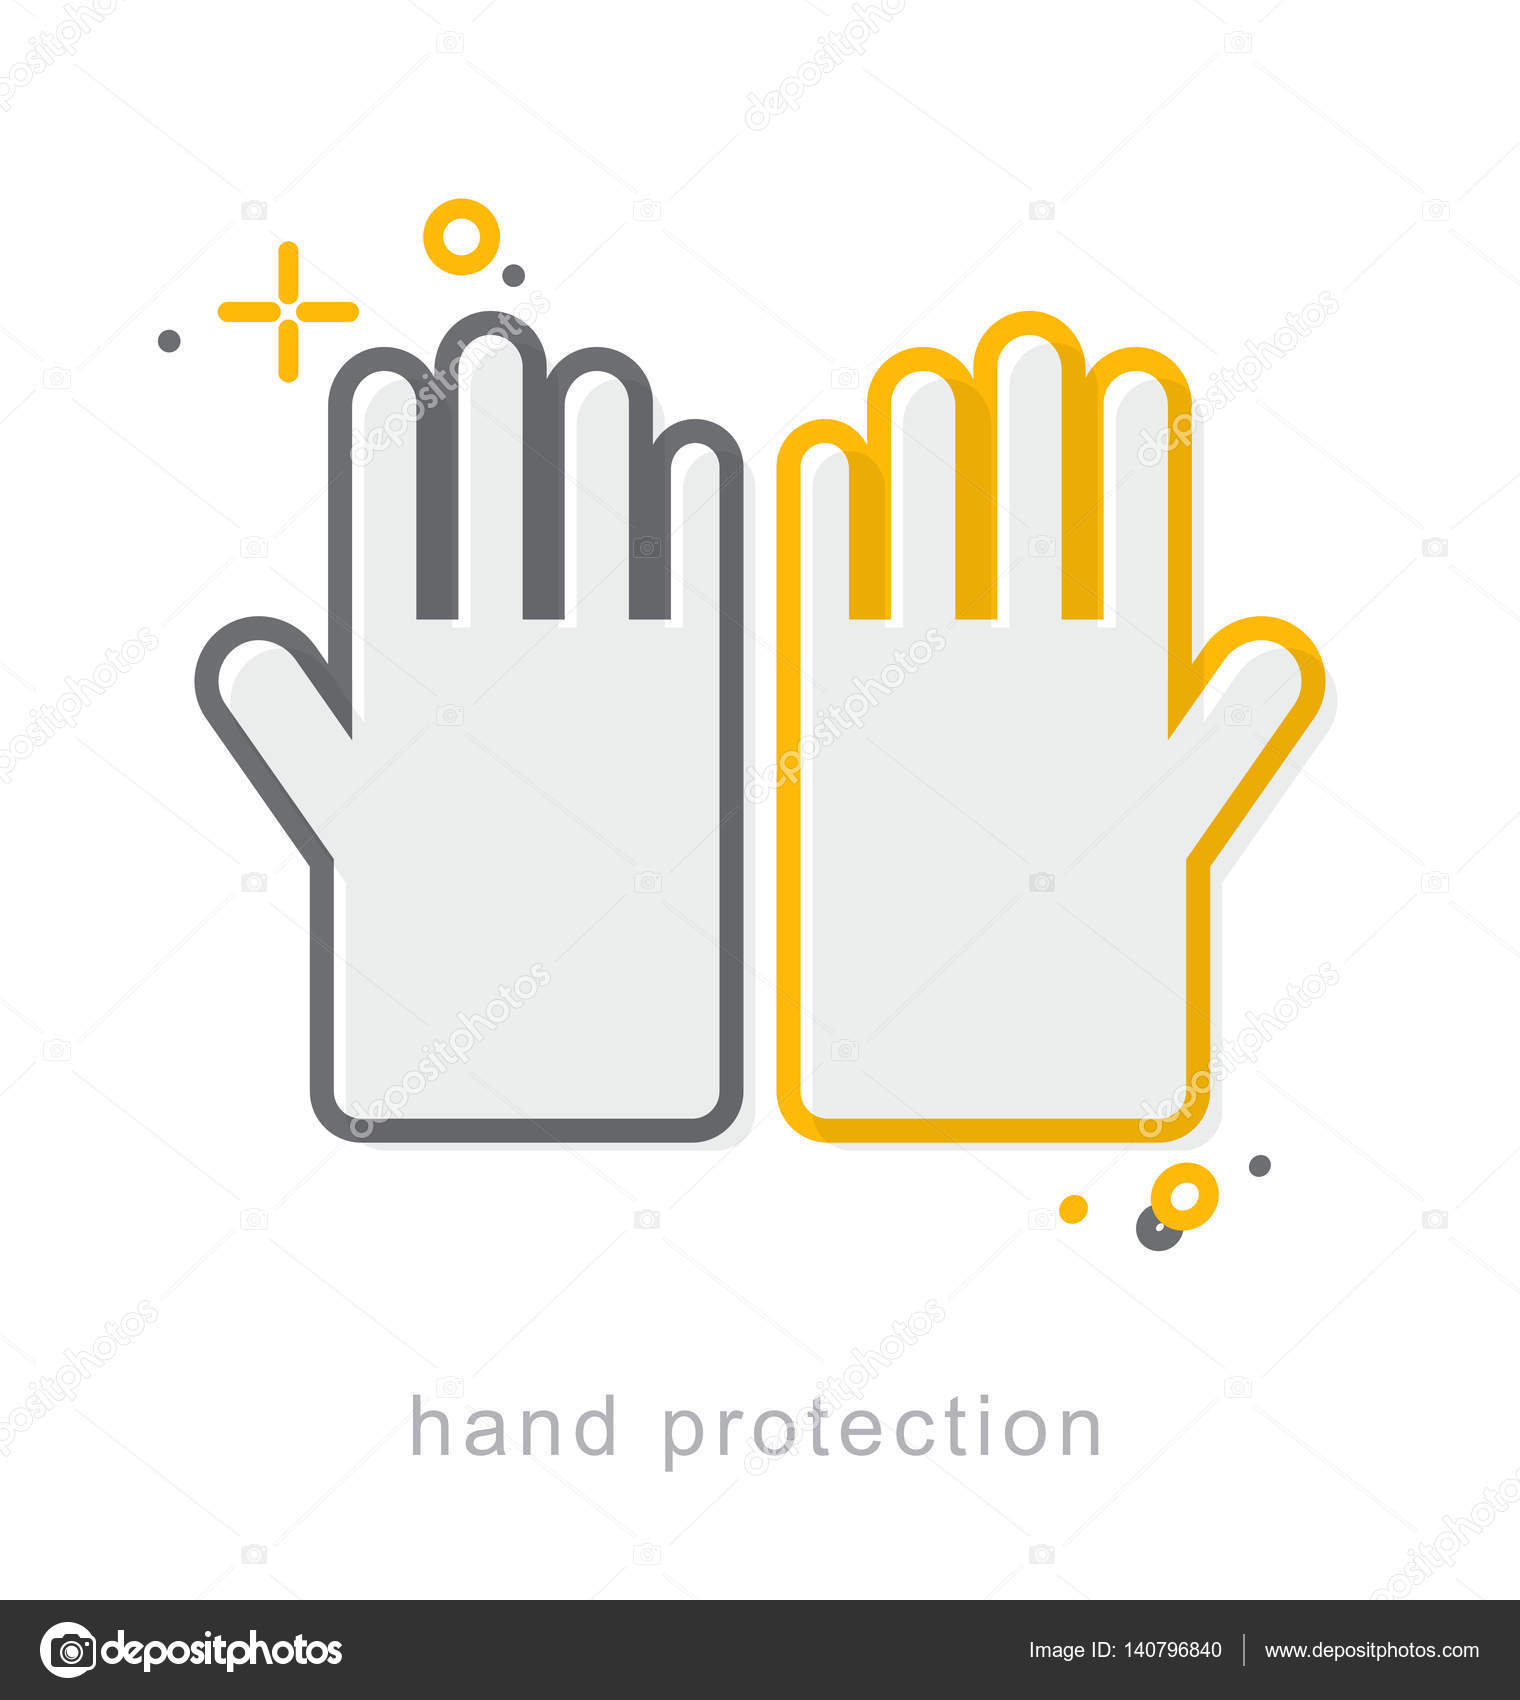 Thin line icons hand protection 3 stock vector thesomeday123 thin line icons linear symbols hand protection vector by thesomeday123 biocorpaavc